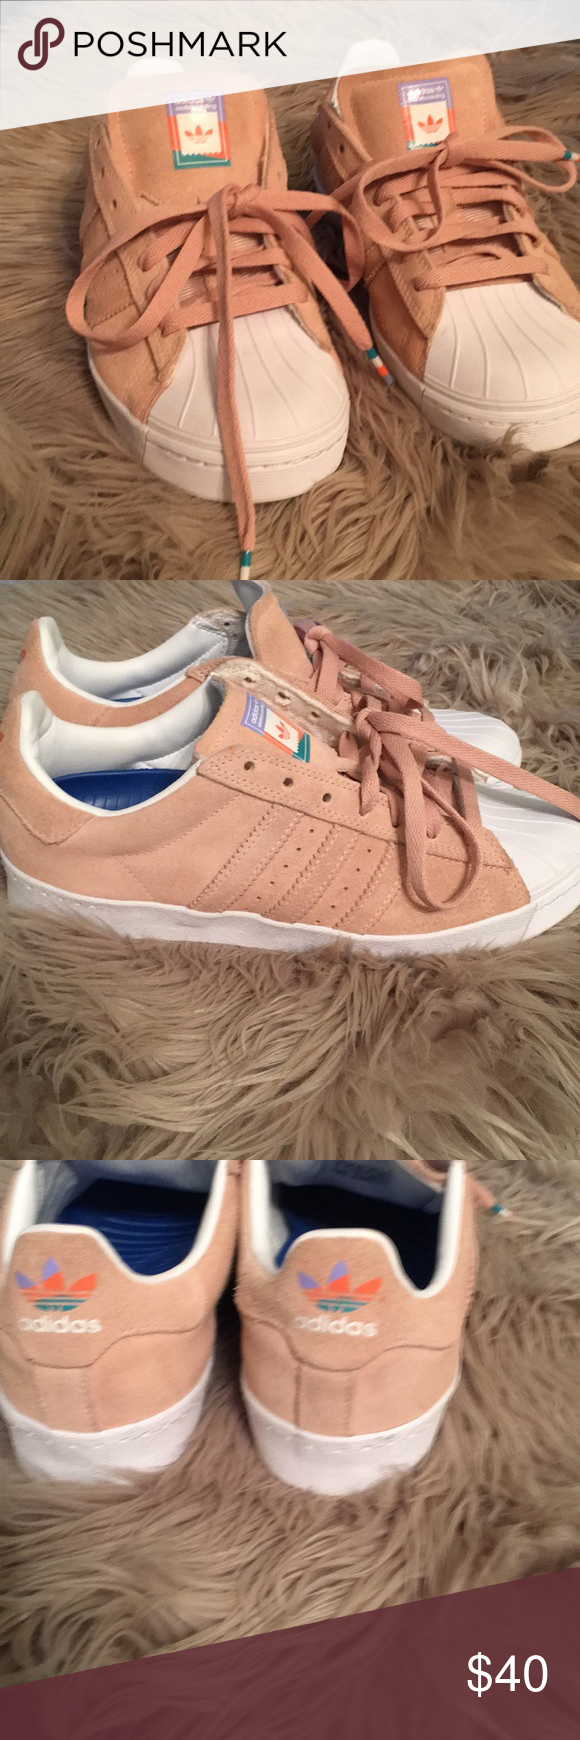 0dd3e24c936c Adidas Superstar Vulc ADV Pastel Pink Shoes NEW adidas Superstar Vulc ADV  Pastel Pink Shoes Size 6 men or 8 women. In excellent condition. Worn once  adidas ...